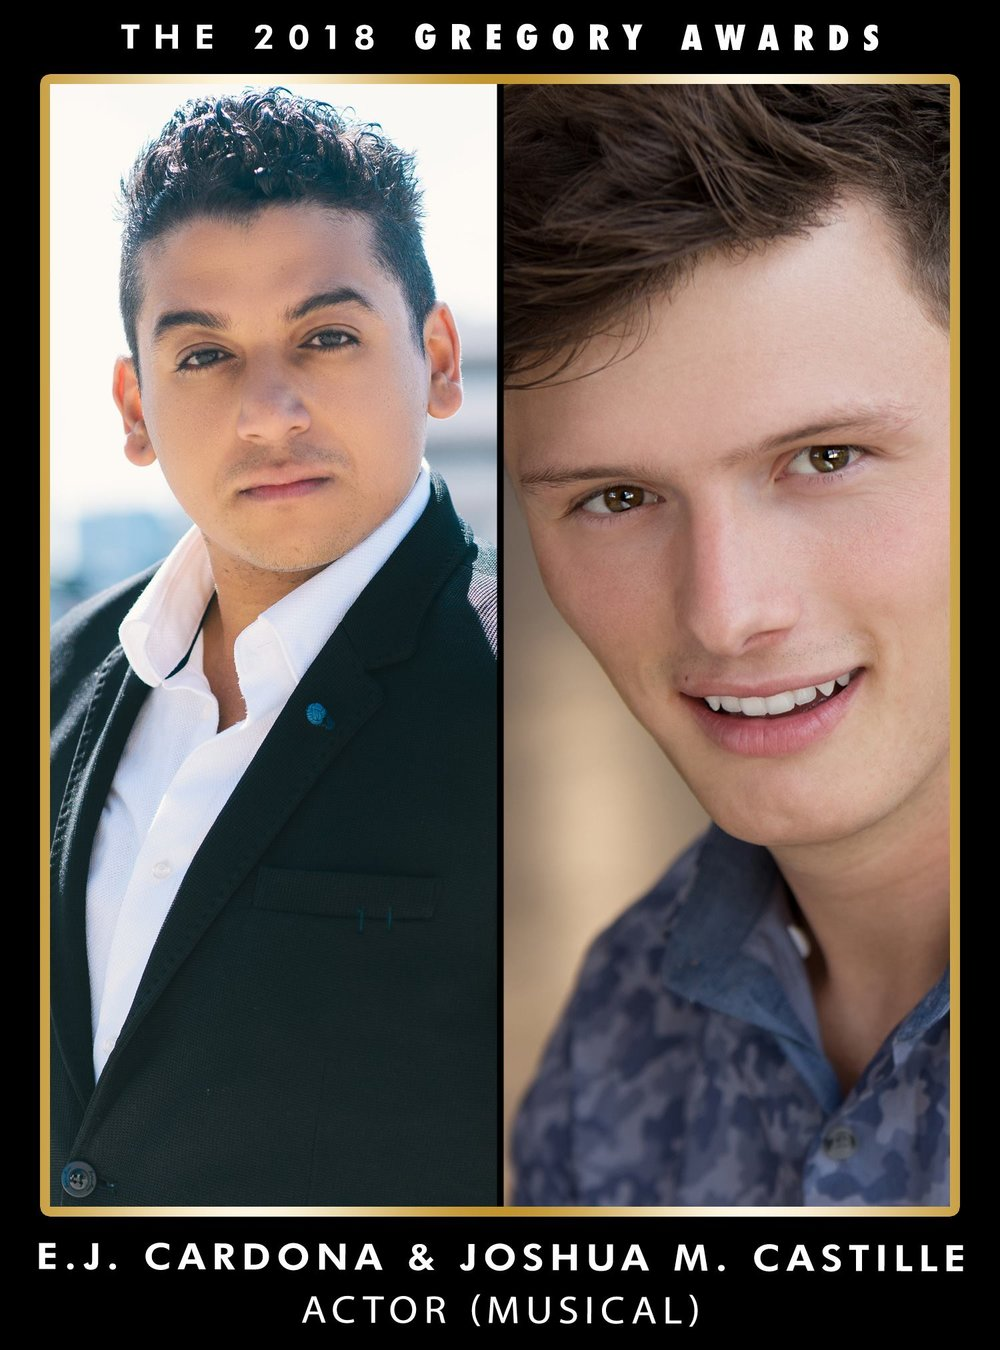 Gregory Award Recipient  - Outstanding Actor in a Musical goes to.. E.J. Cardona & Joshua M. Castille for